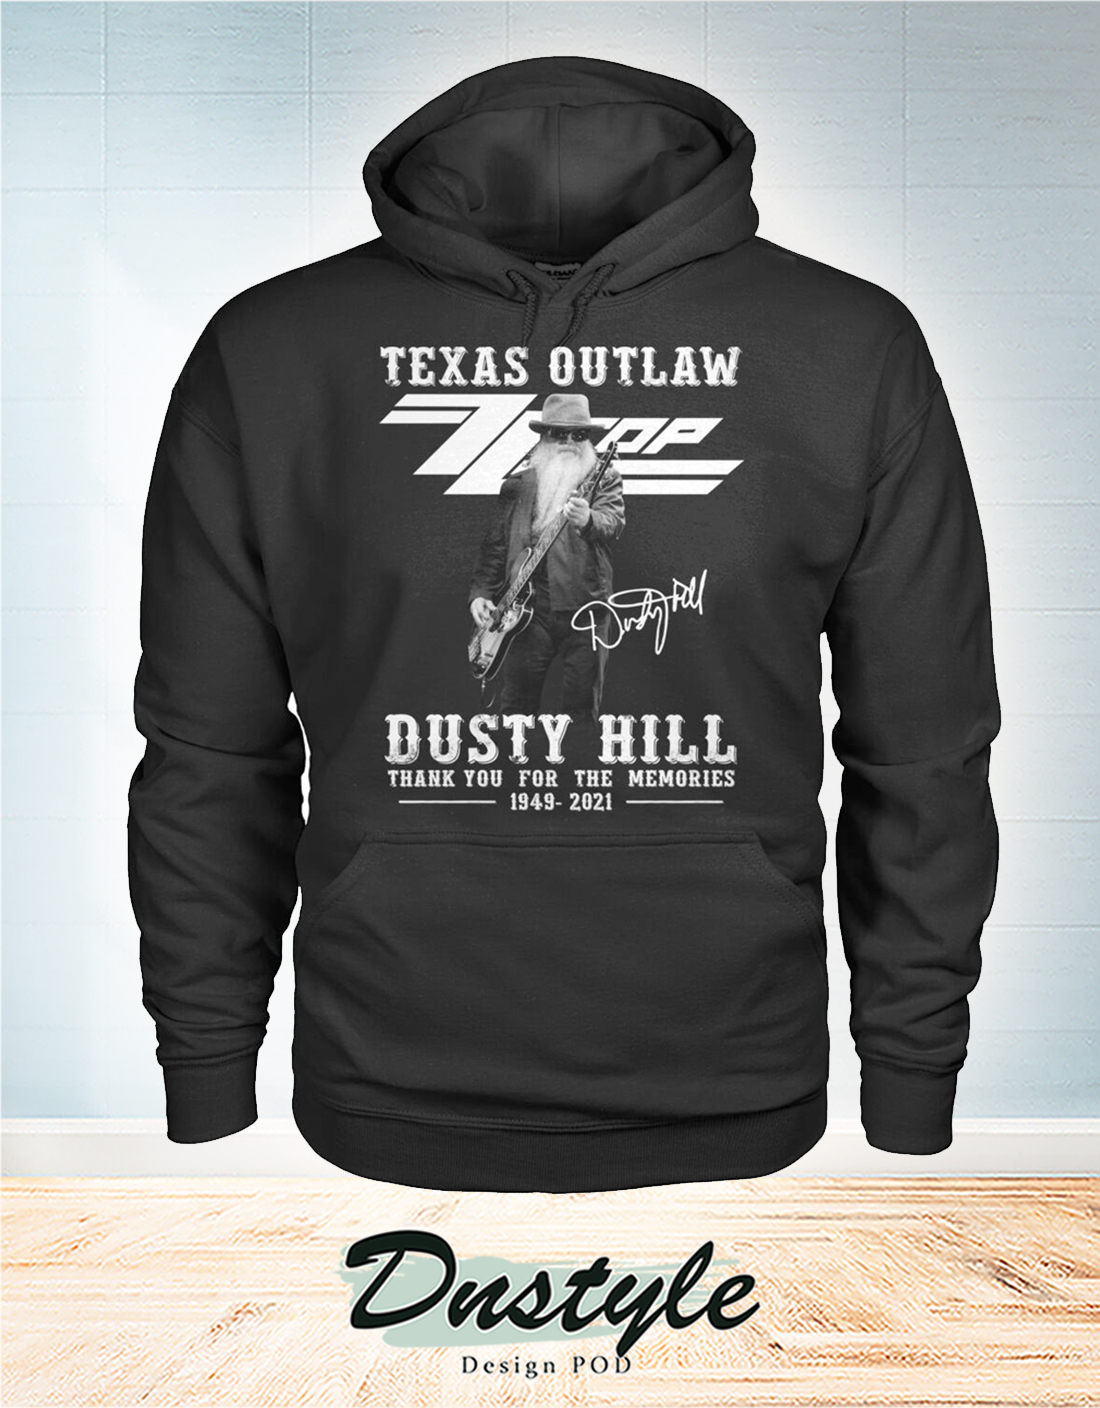 Texas outlaw ZZ Top dusty hill thank you for the memories hoodie